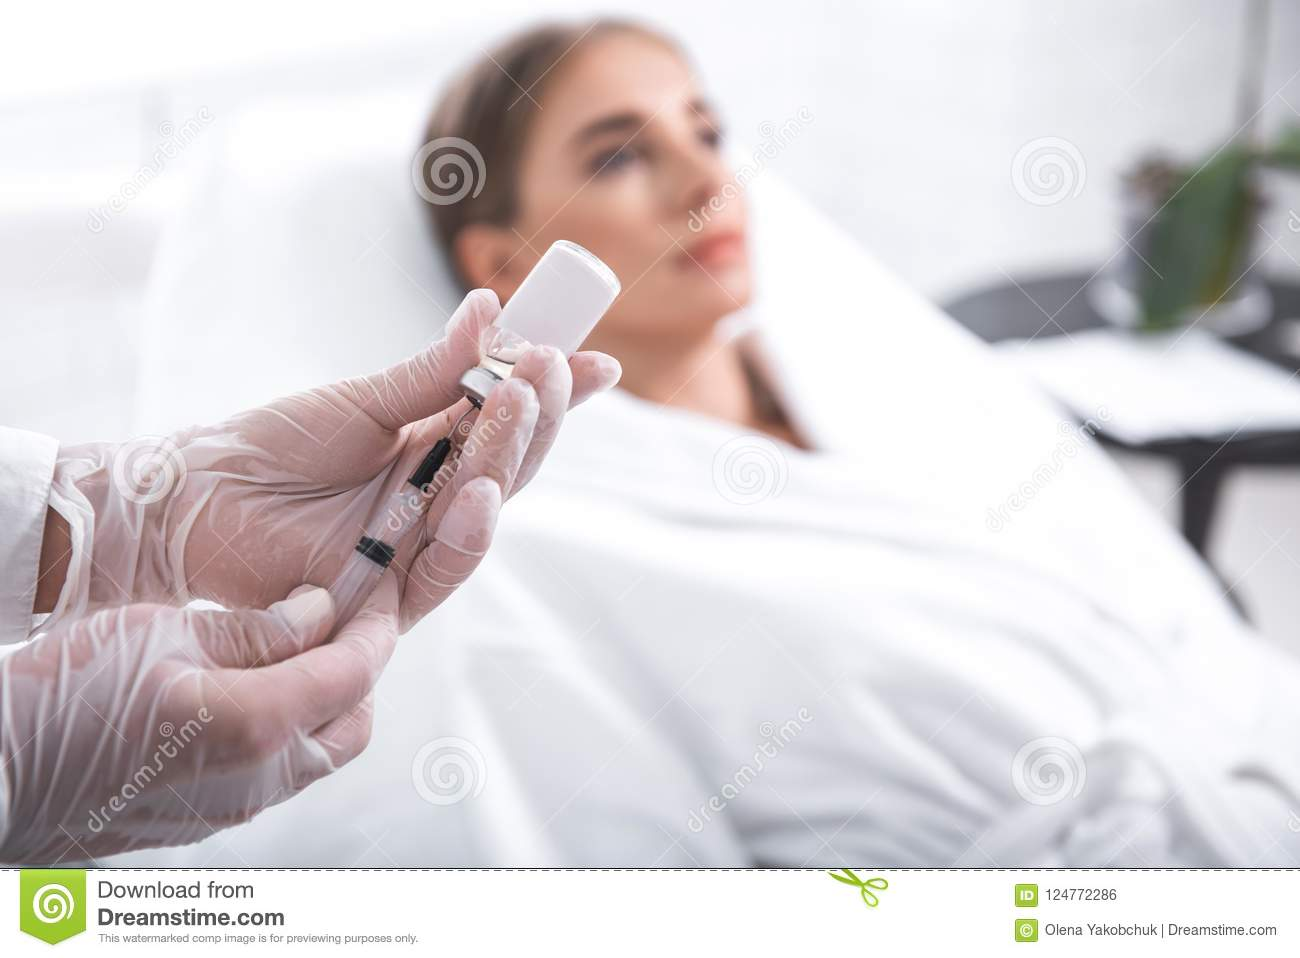 Cosmetologist filling syringe while young lady lying on daybed